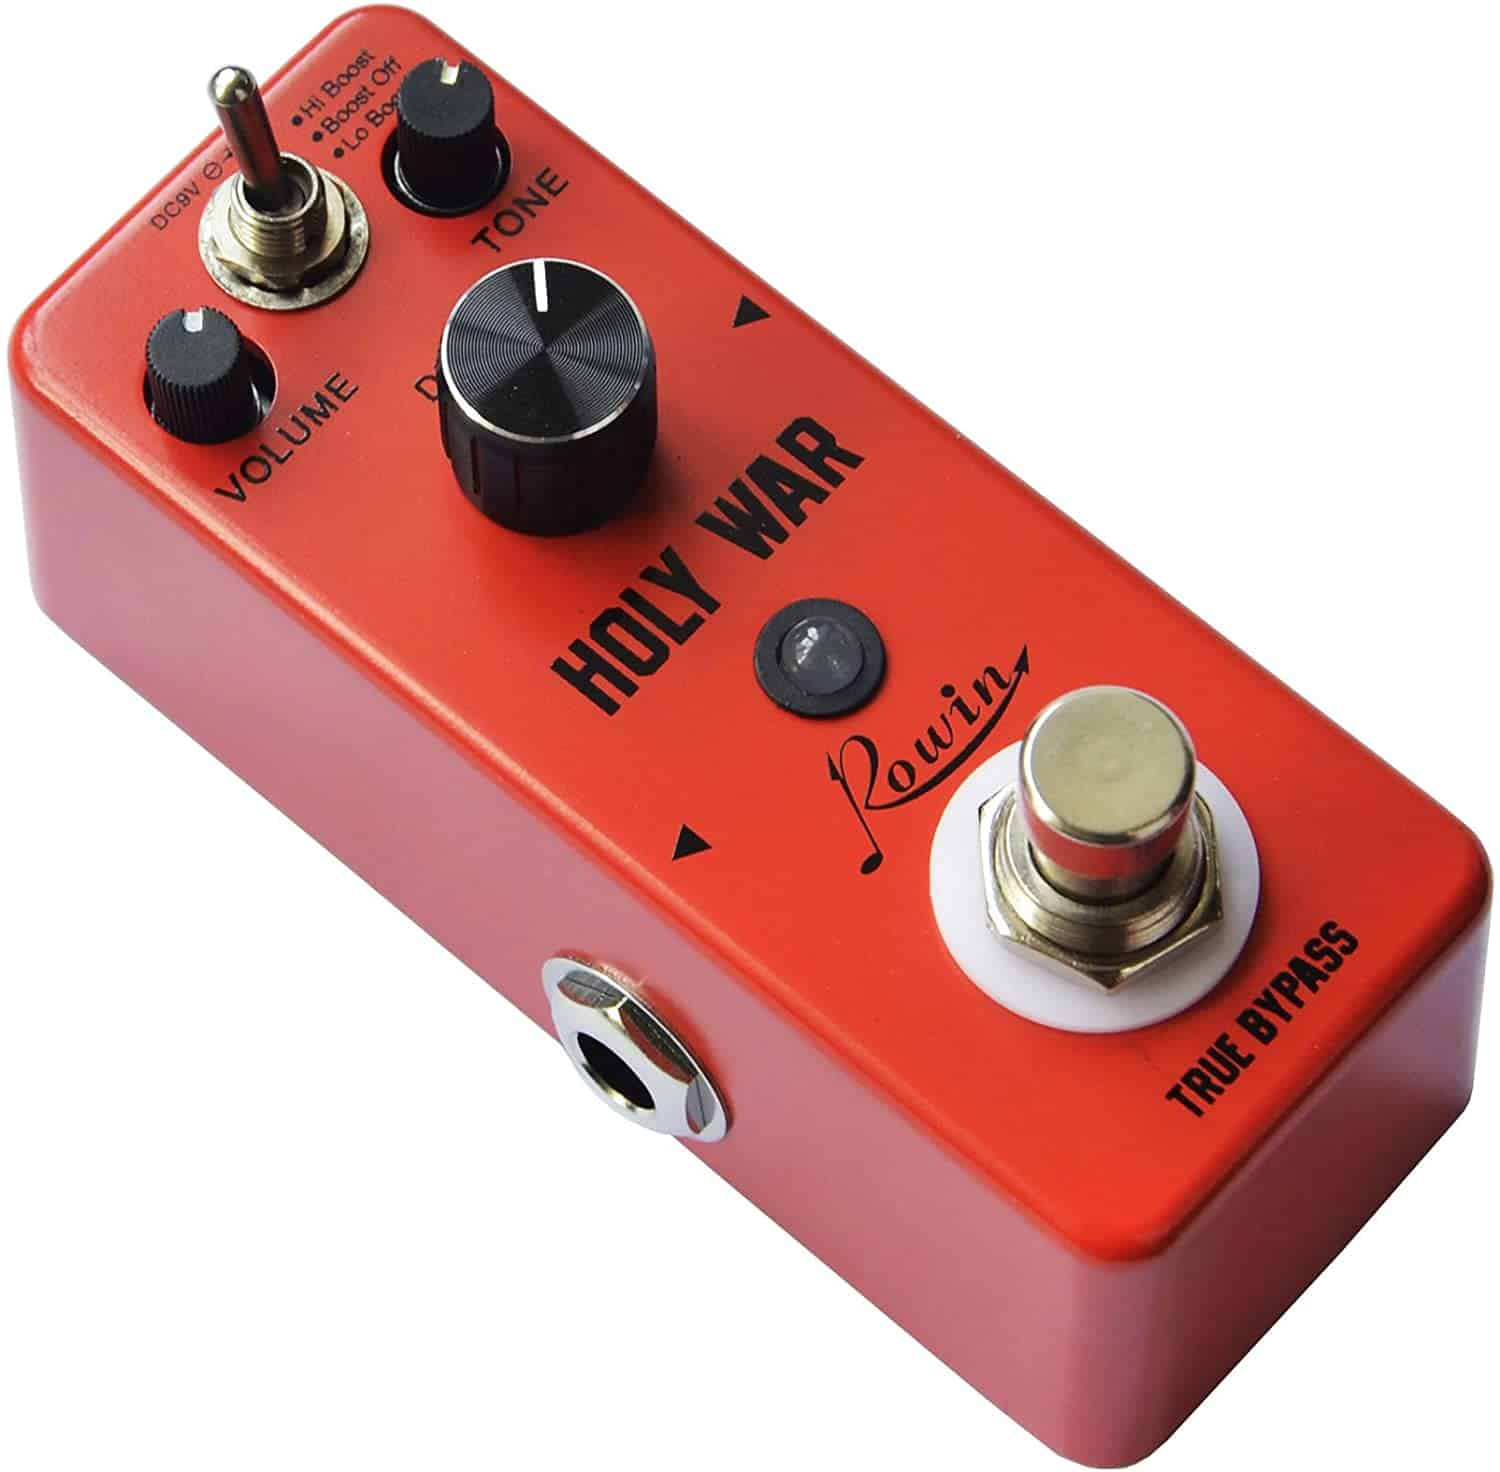 Rowin Analog Heavy Metal Distortion Pedal